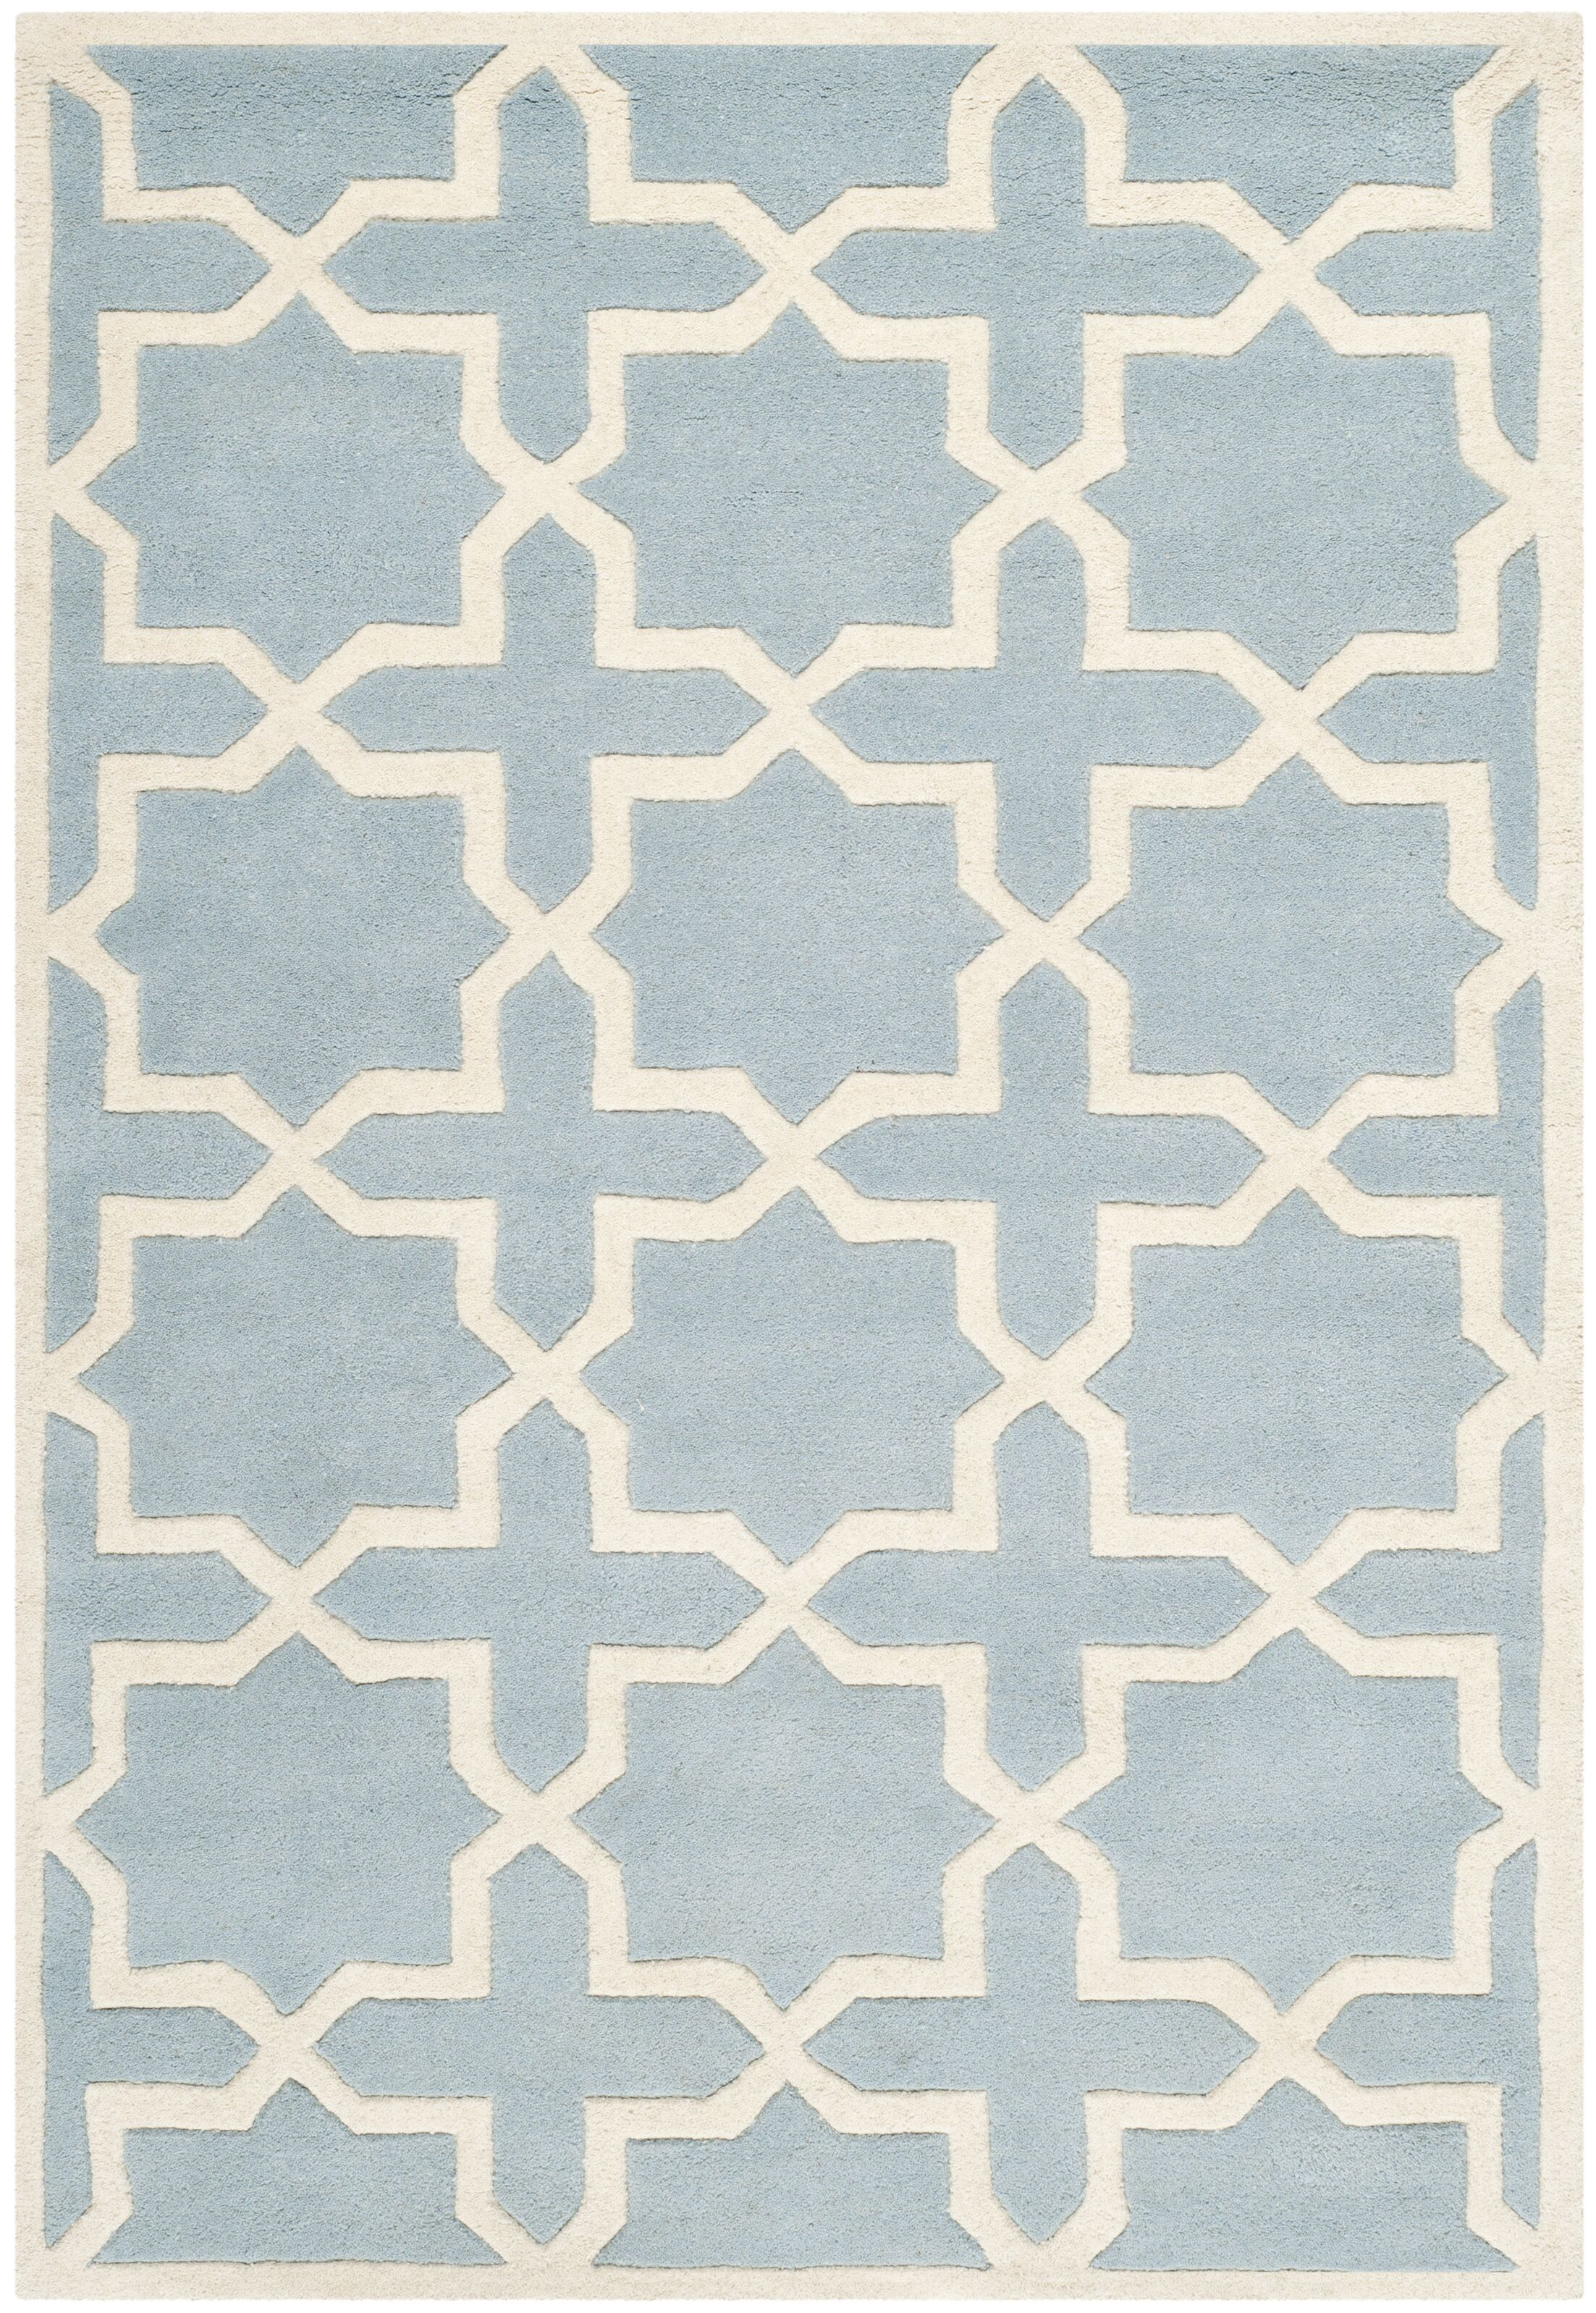 Wilkin Hand-Tufted Blue/Ivory Area Rug Rug Size: Runner 2'3